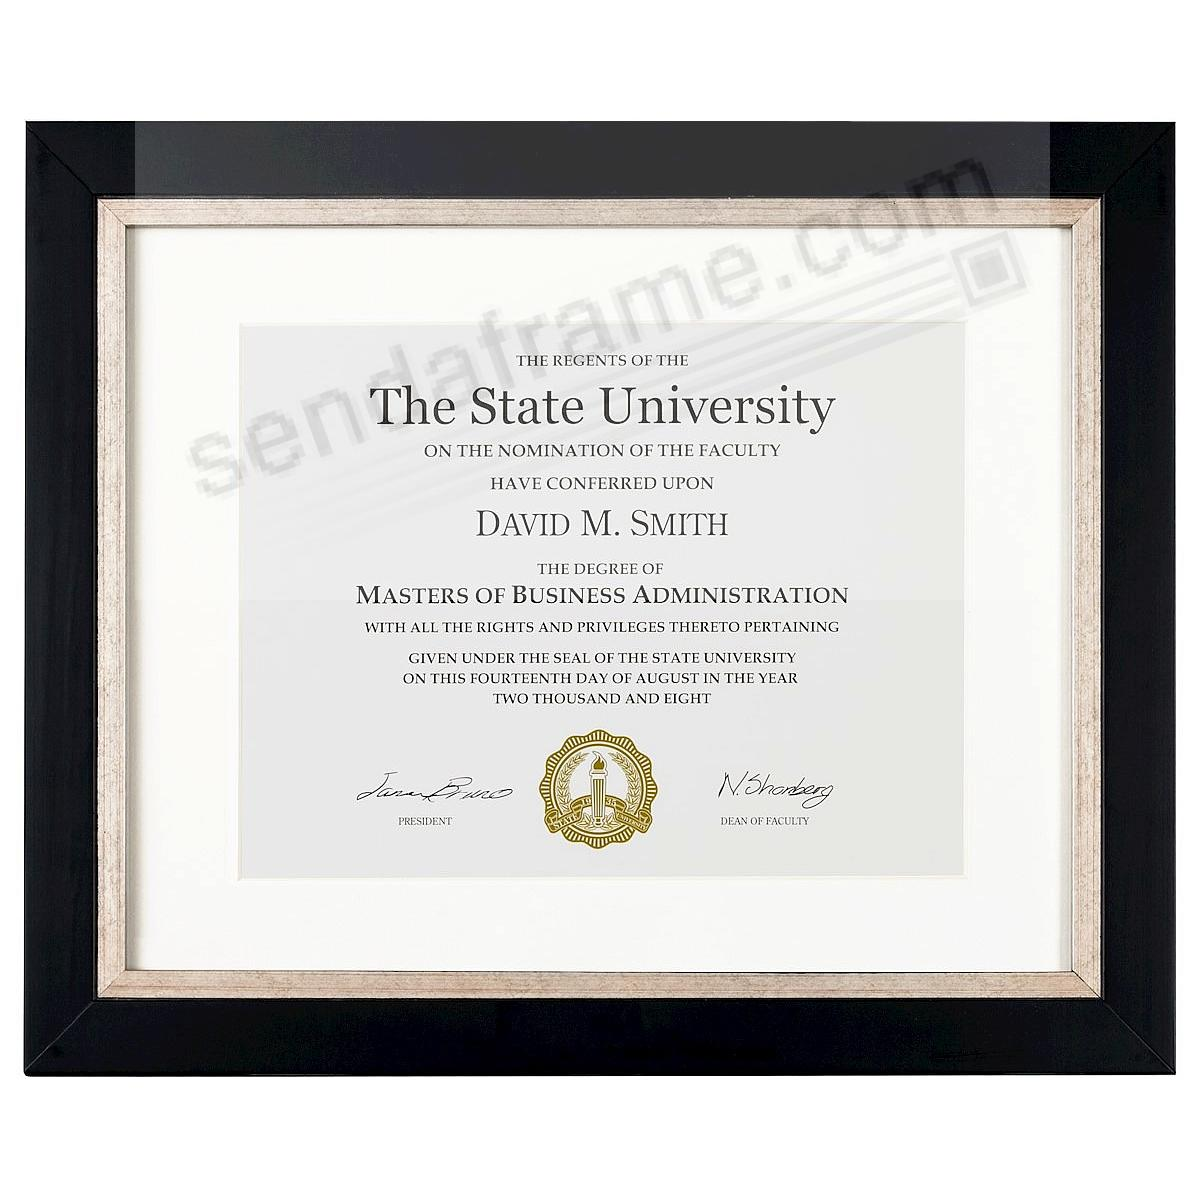 TAYLOR Two-Tone Black/Champagne ARTCARE 11x14/8.5x11 certificate frame by Nielsen®